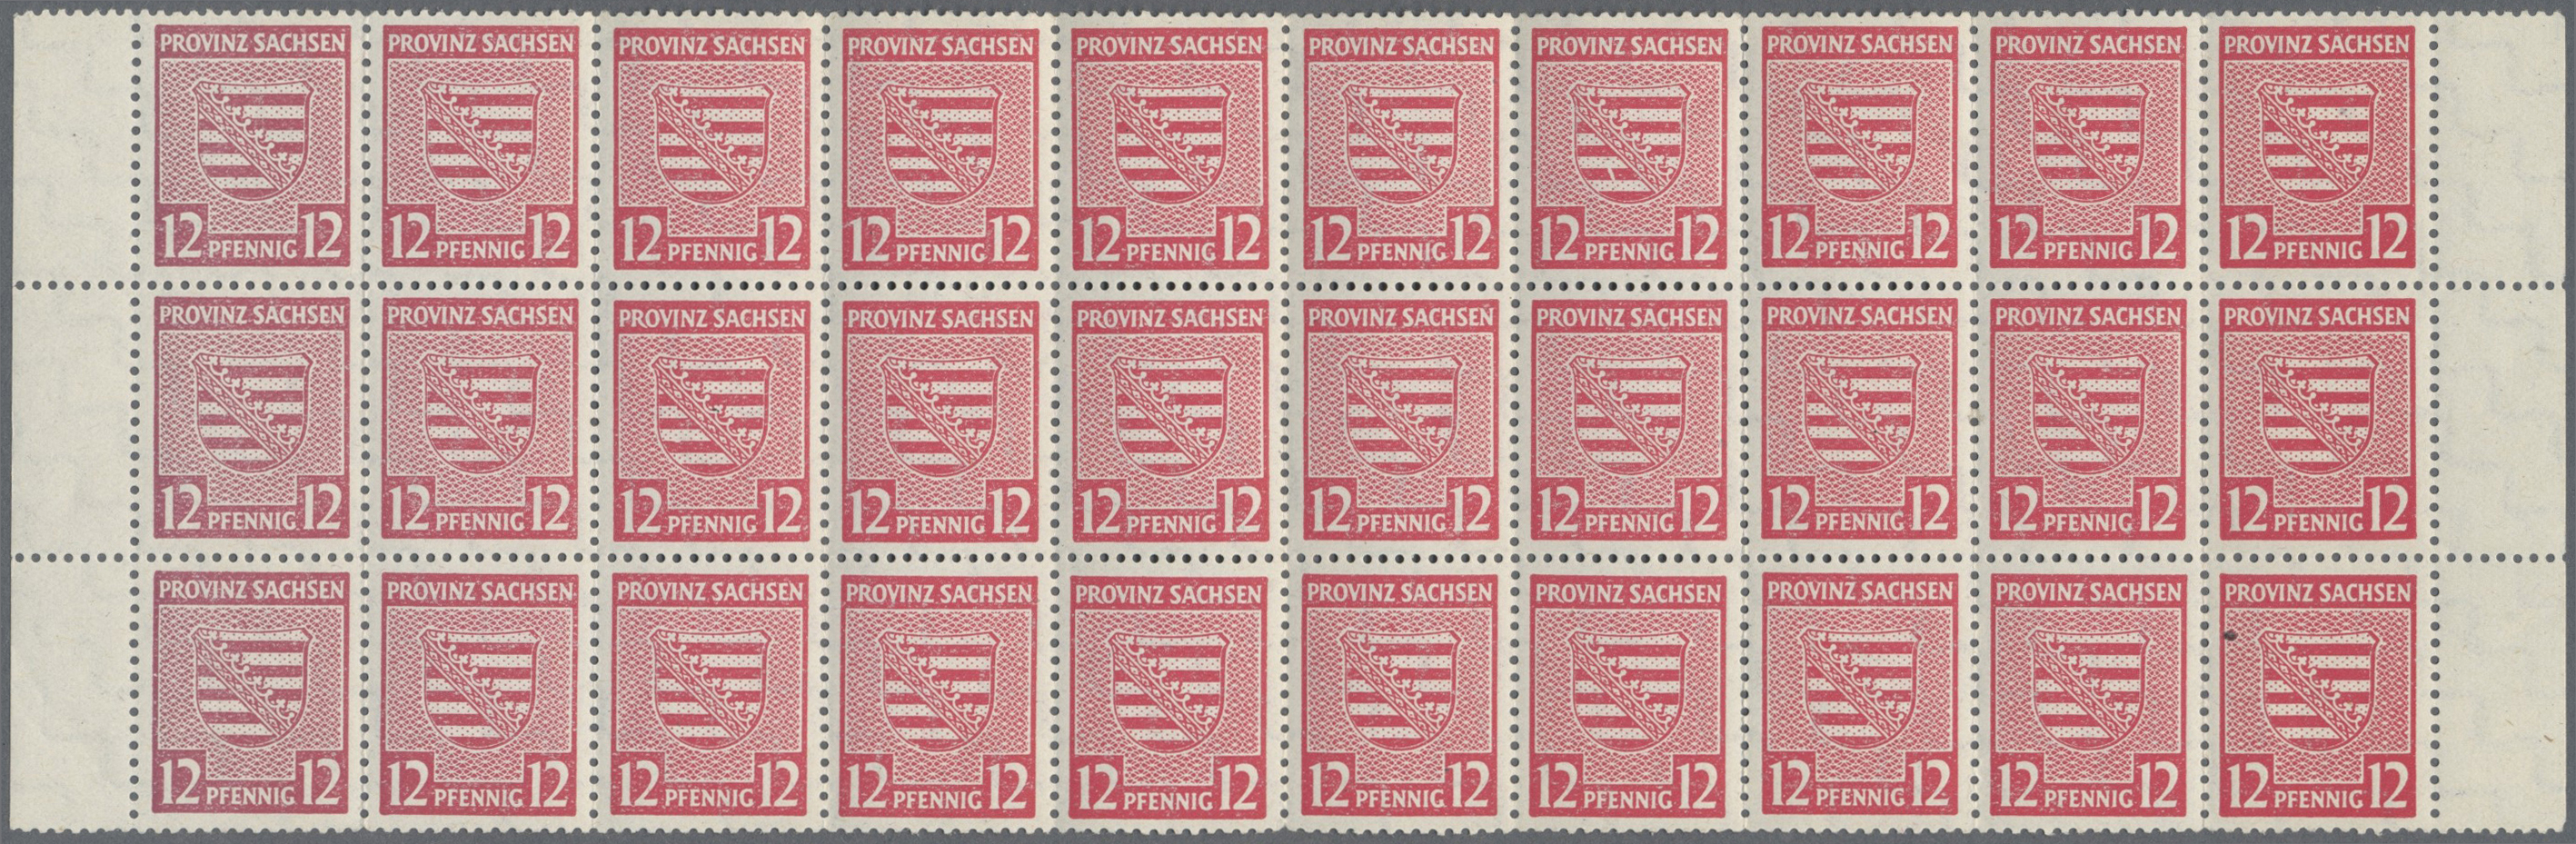 Lot 24138 - Sowjetische Zone - Provinz Sachsen  -  Auktionshaus Christoph Gärtner GmbH & Co. KG Single lots Germany + Picture Postcards. Auction #39 Day 5